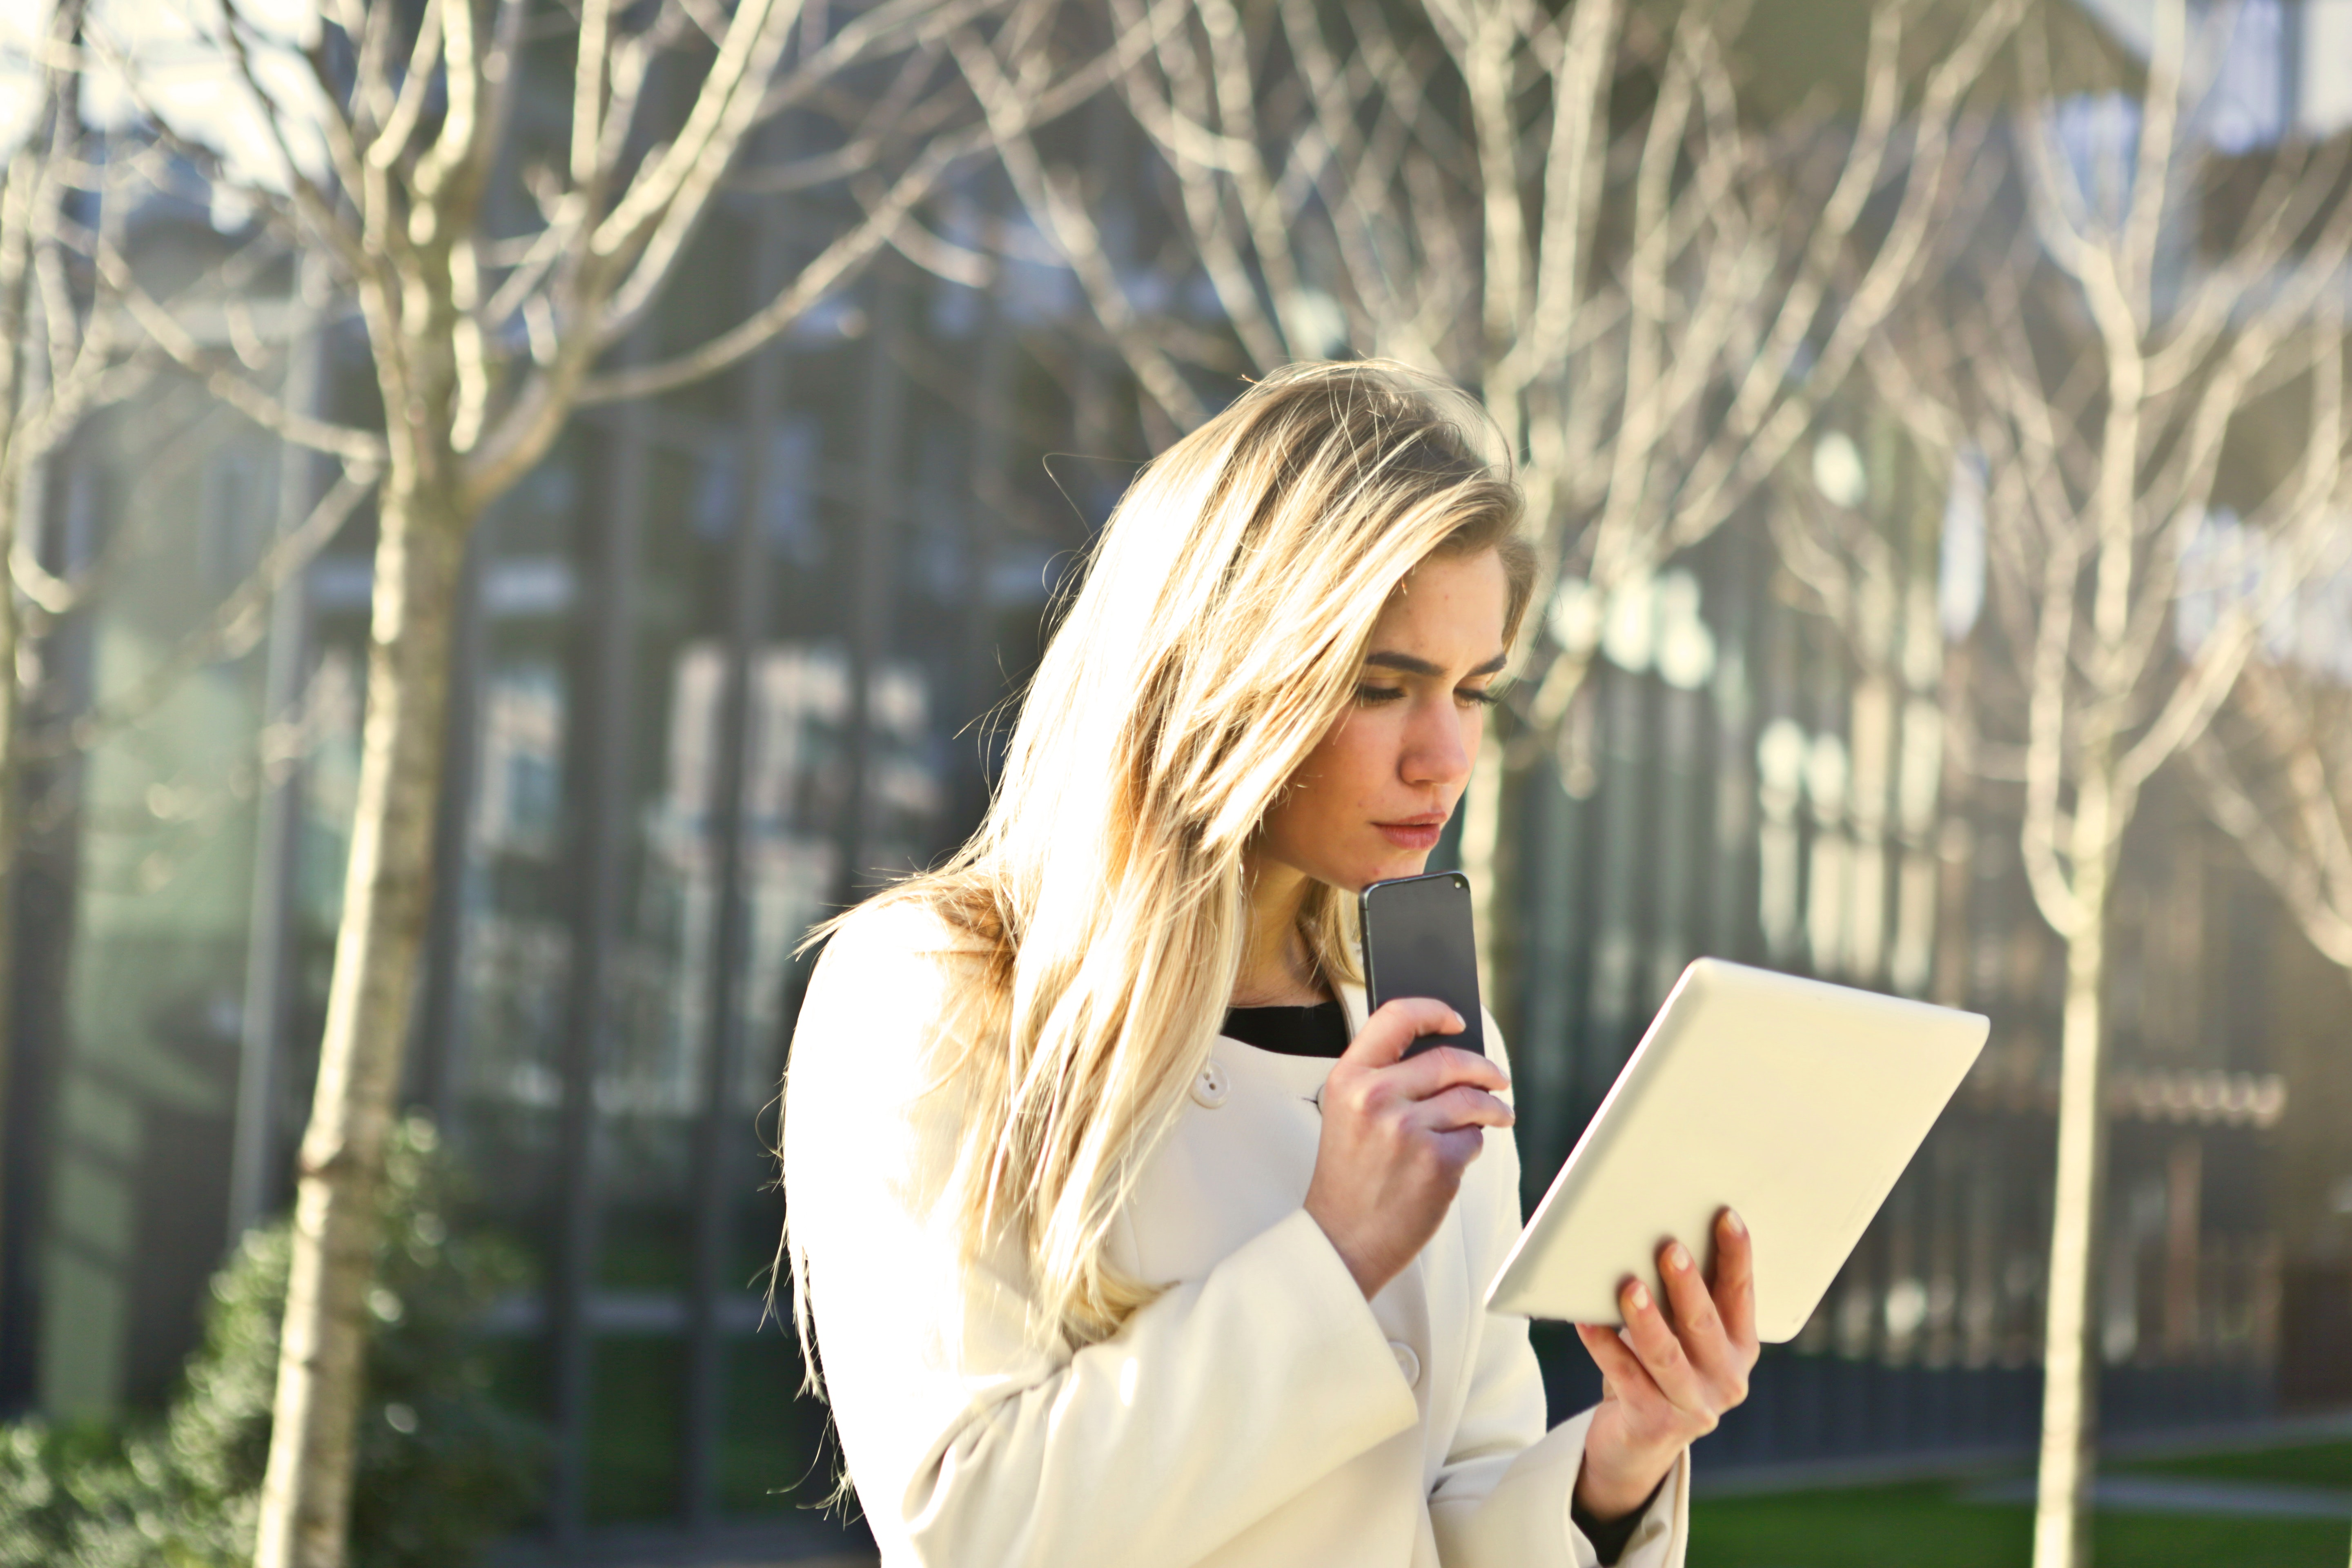 Brown-haired woman holding a white wireless device photo